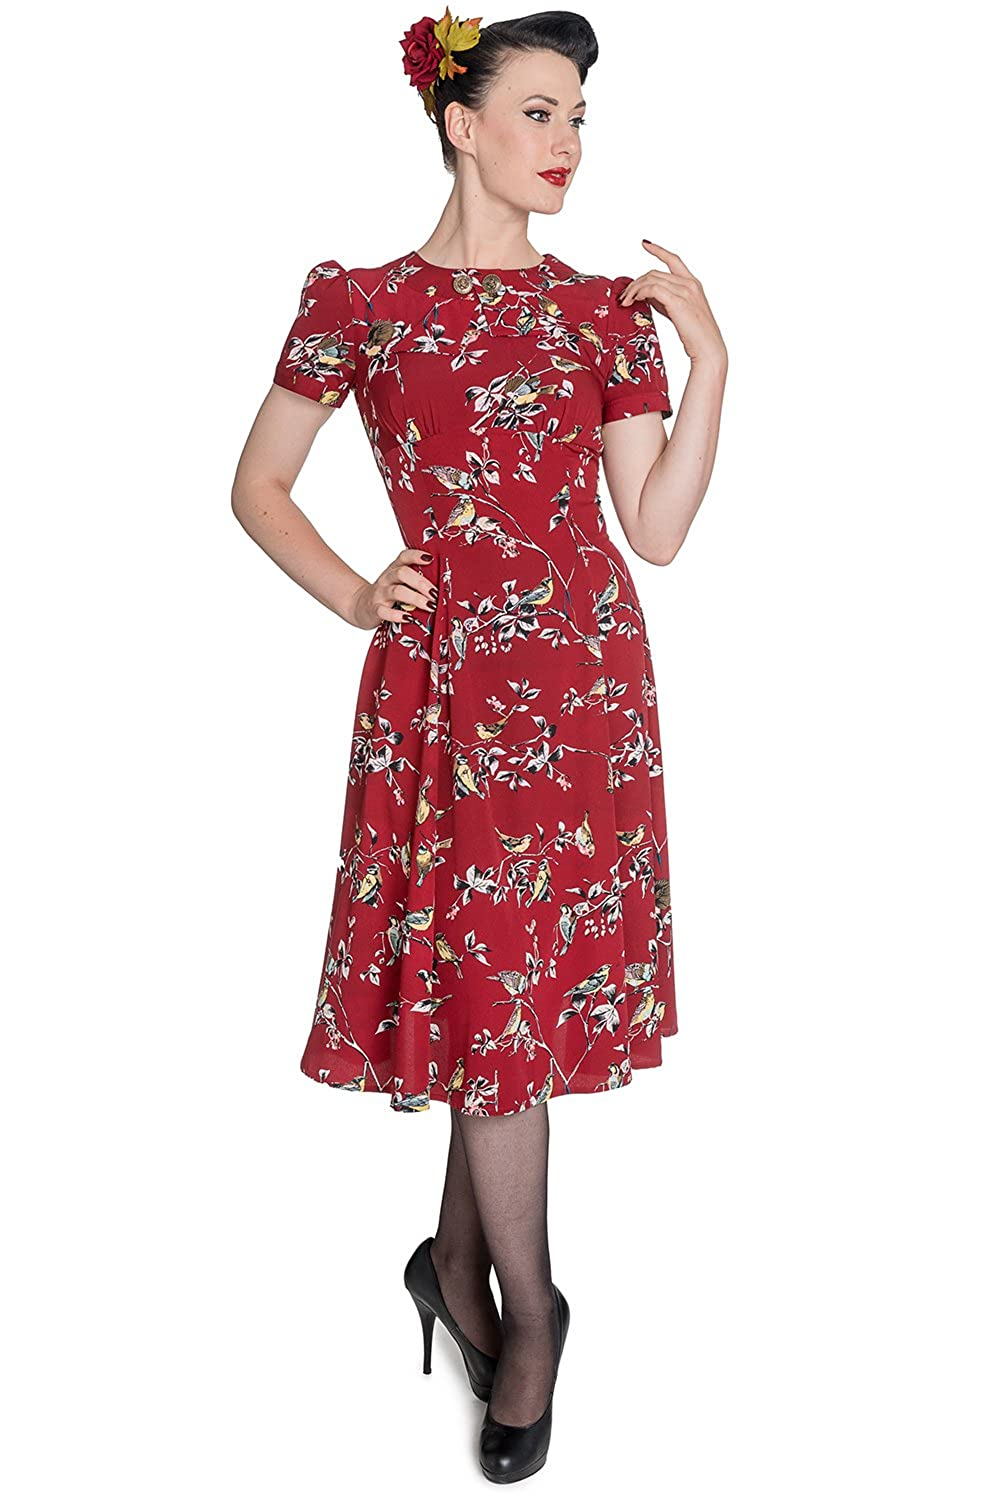 1950s Dresses, 50s Dresses | 1950s Style Dresses Hell Bunny New Birdy Vintage Landgirl 40s Dress $39.99 AT vintagedancer.com